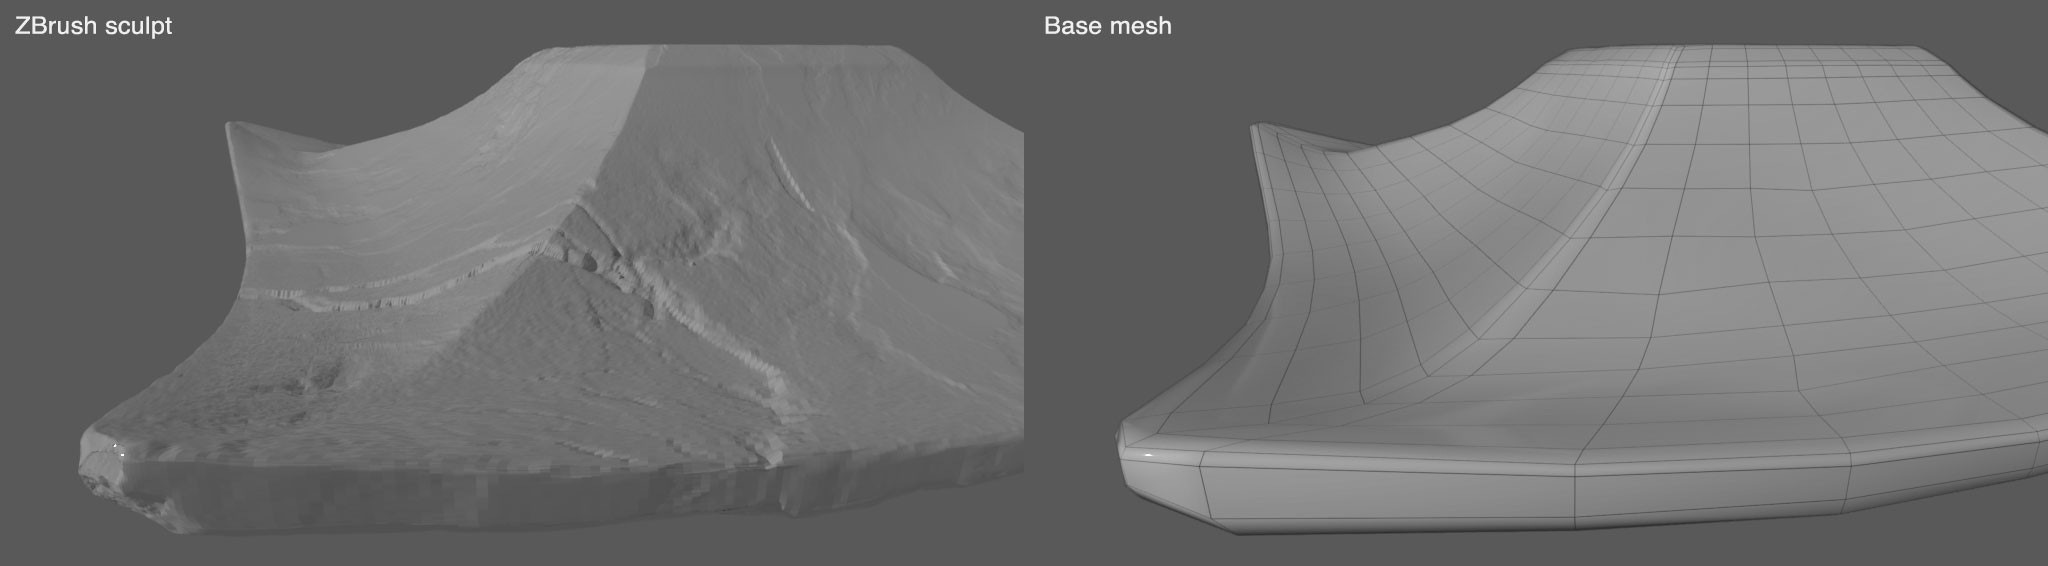 Sculpt vs base mesh.